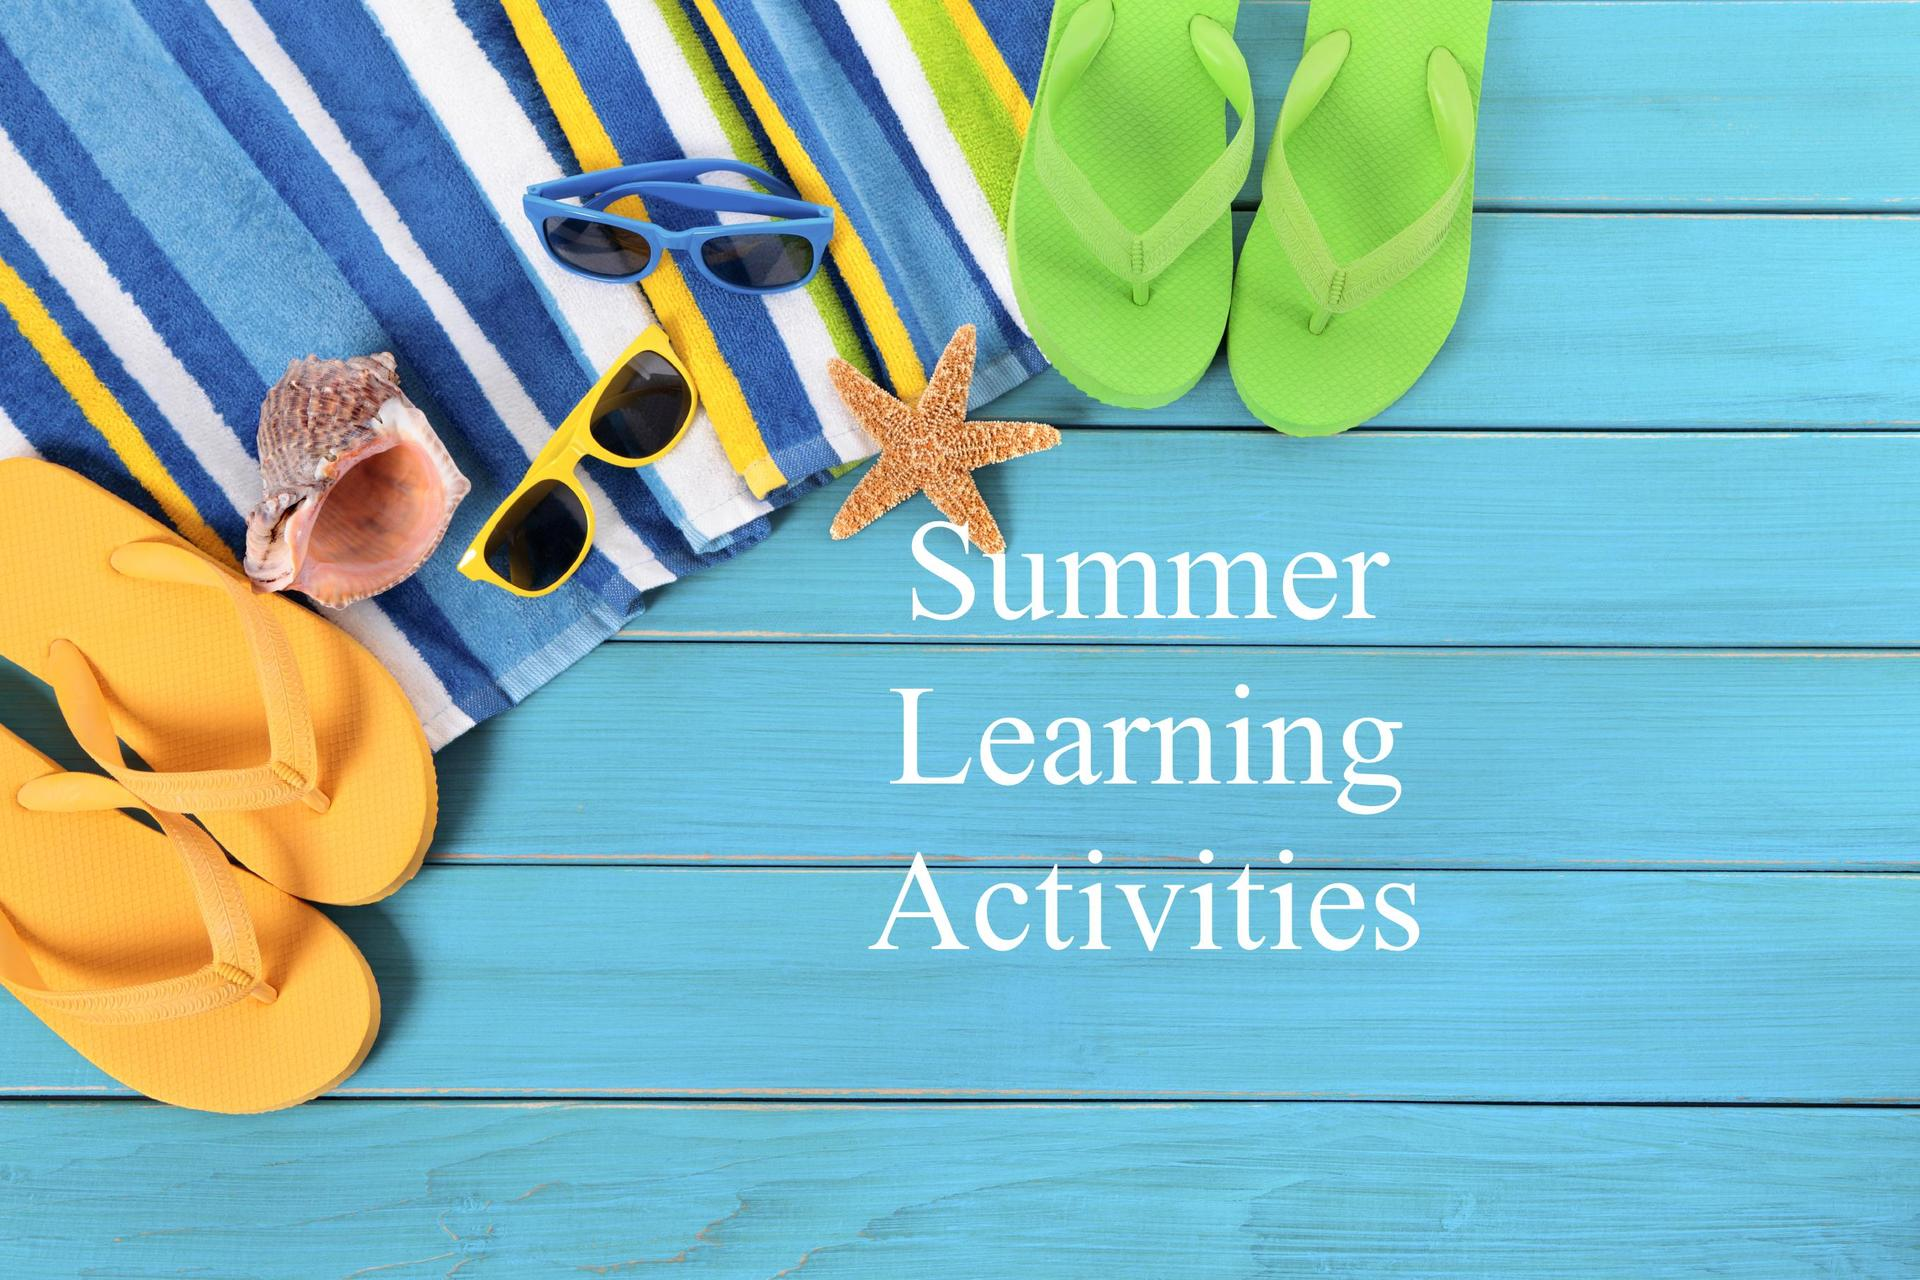 summer activities icon/link